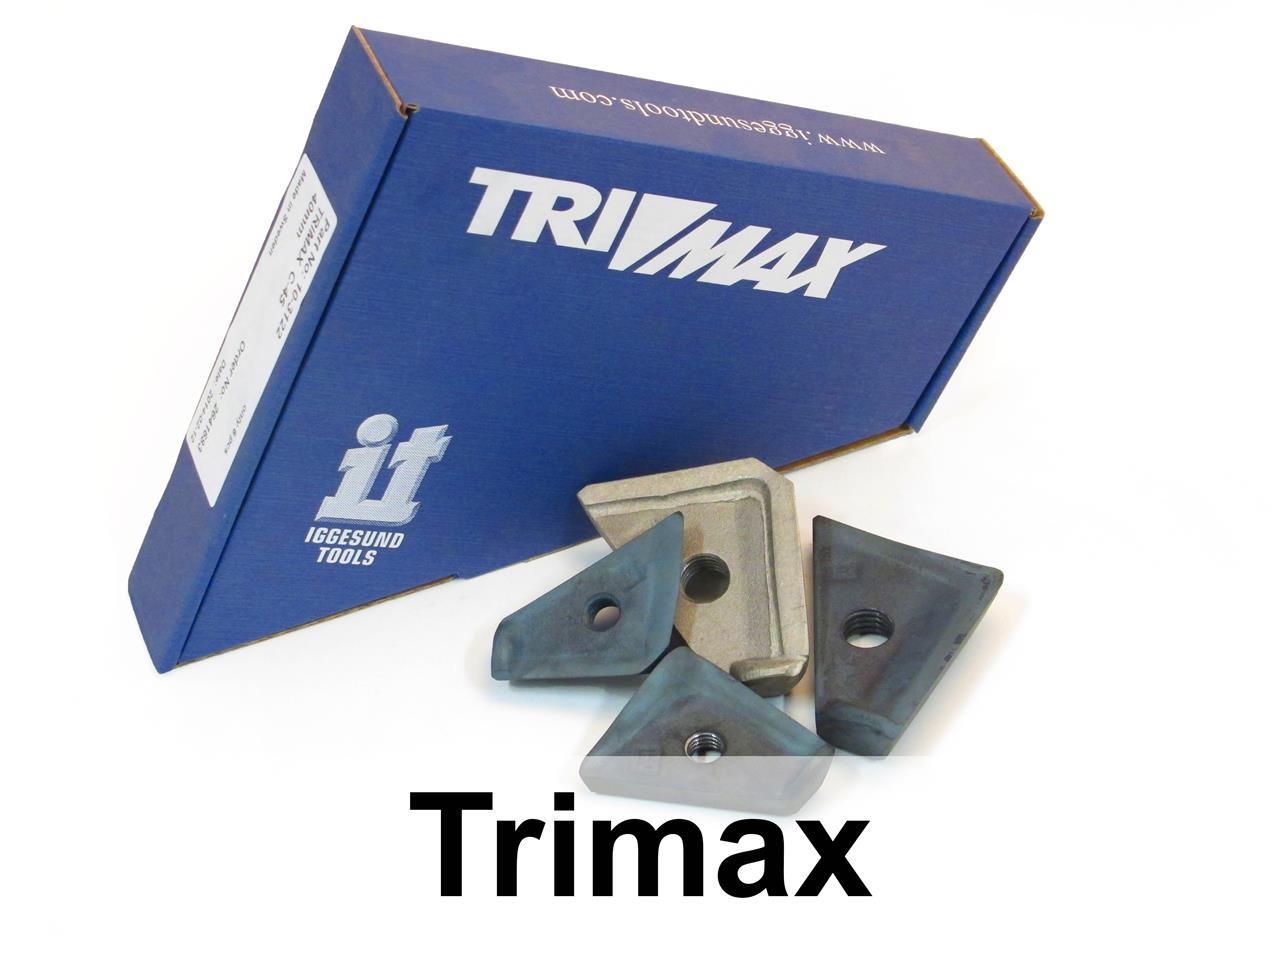 Trimax tips for Cambio Debarker